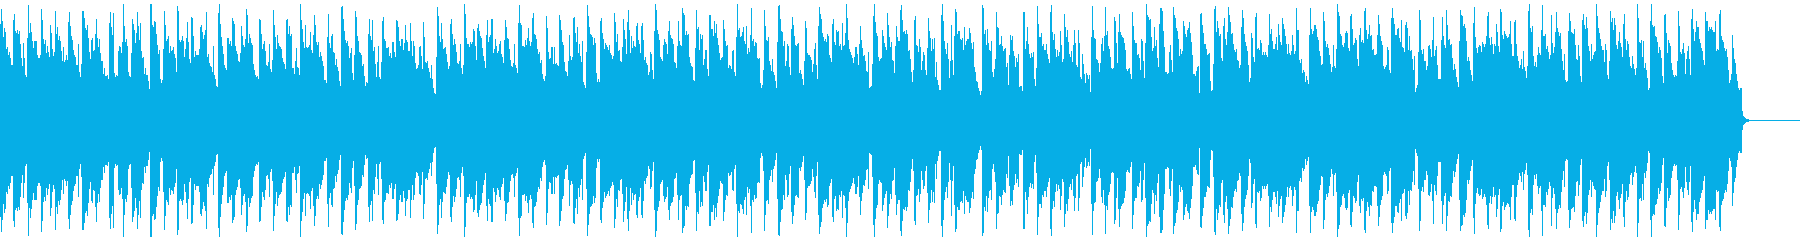 Handel recorder without rhythm for the award ceremony's reproduced waveform